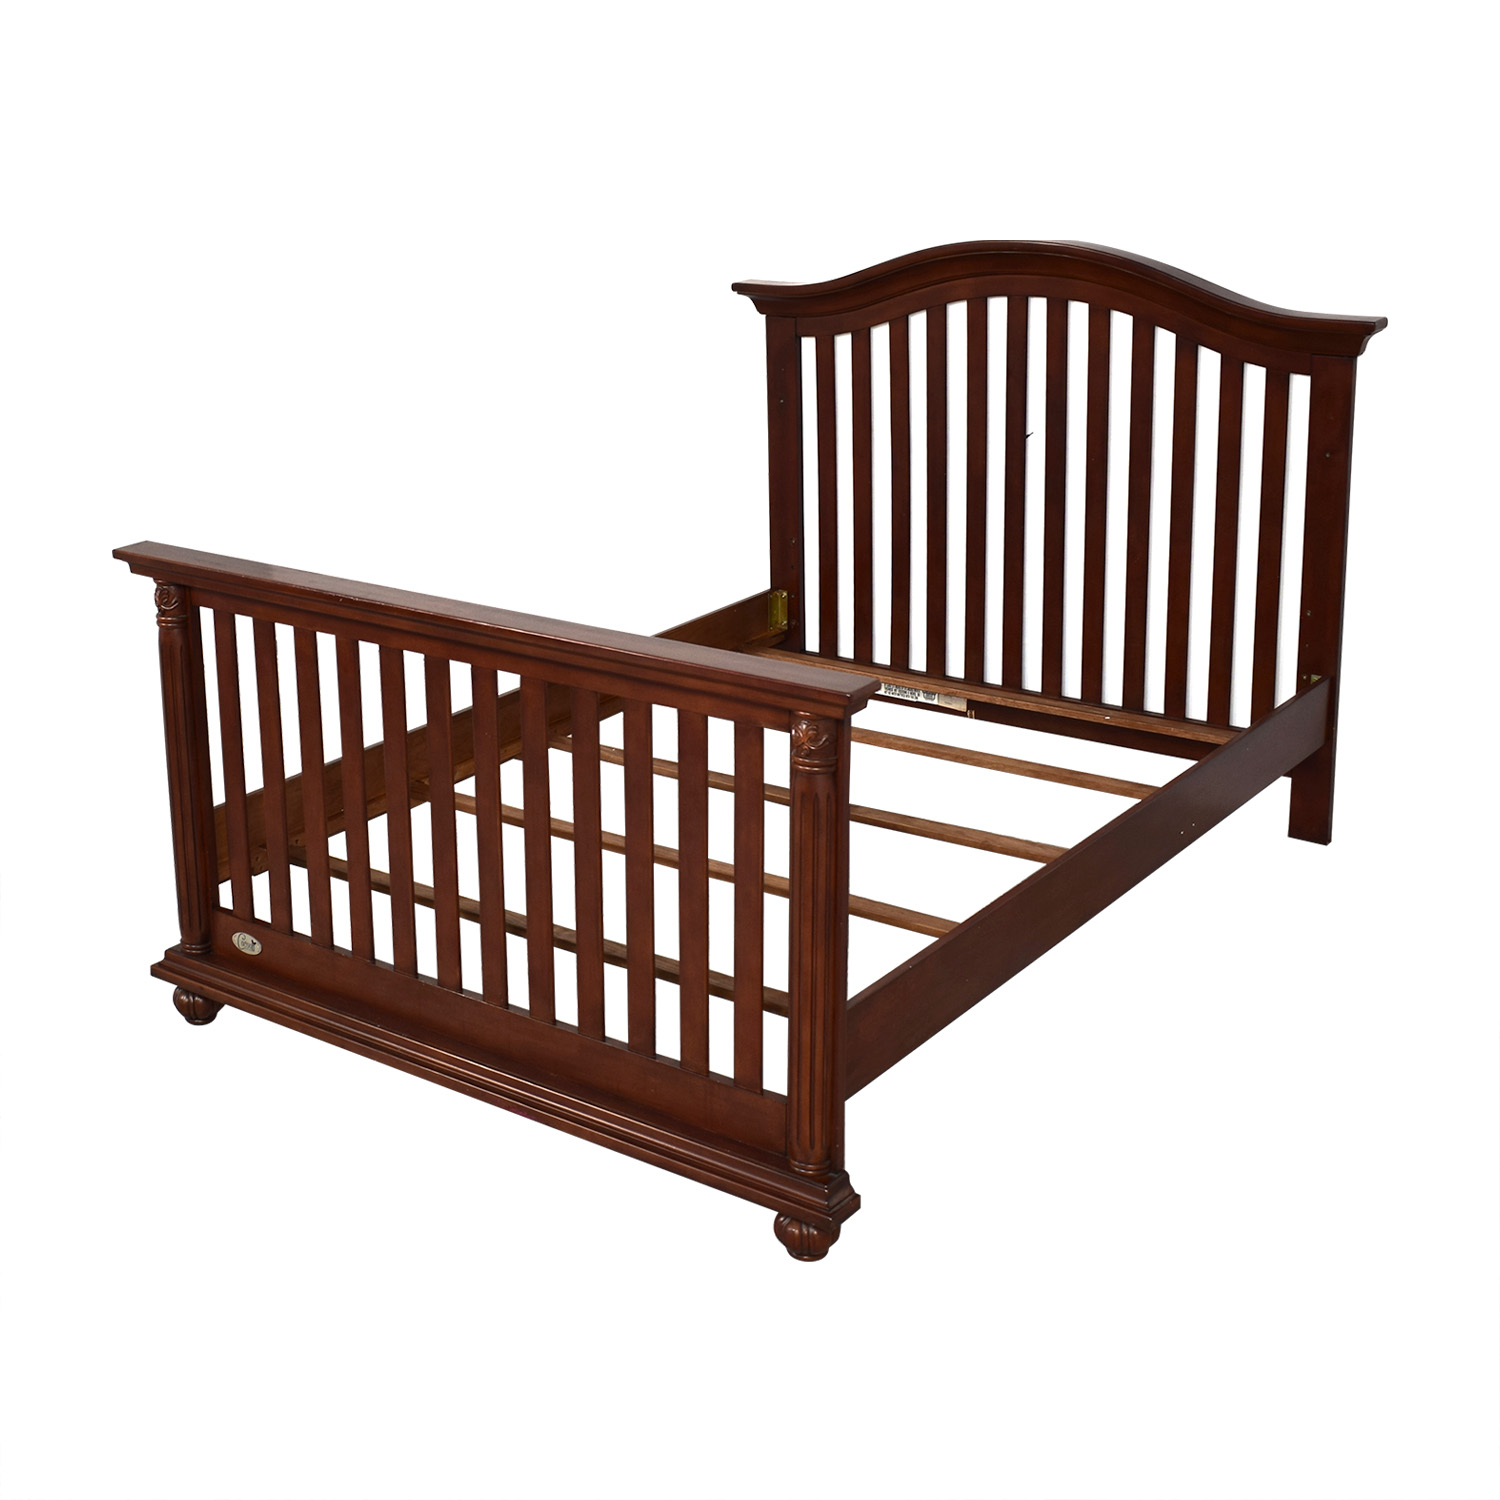 Cocoon Cocoon Furniture Full Size Bed price